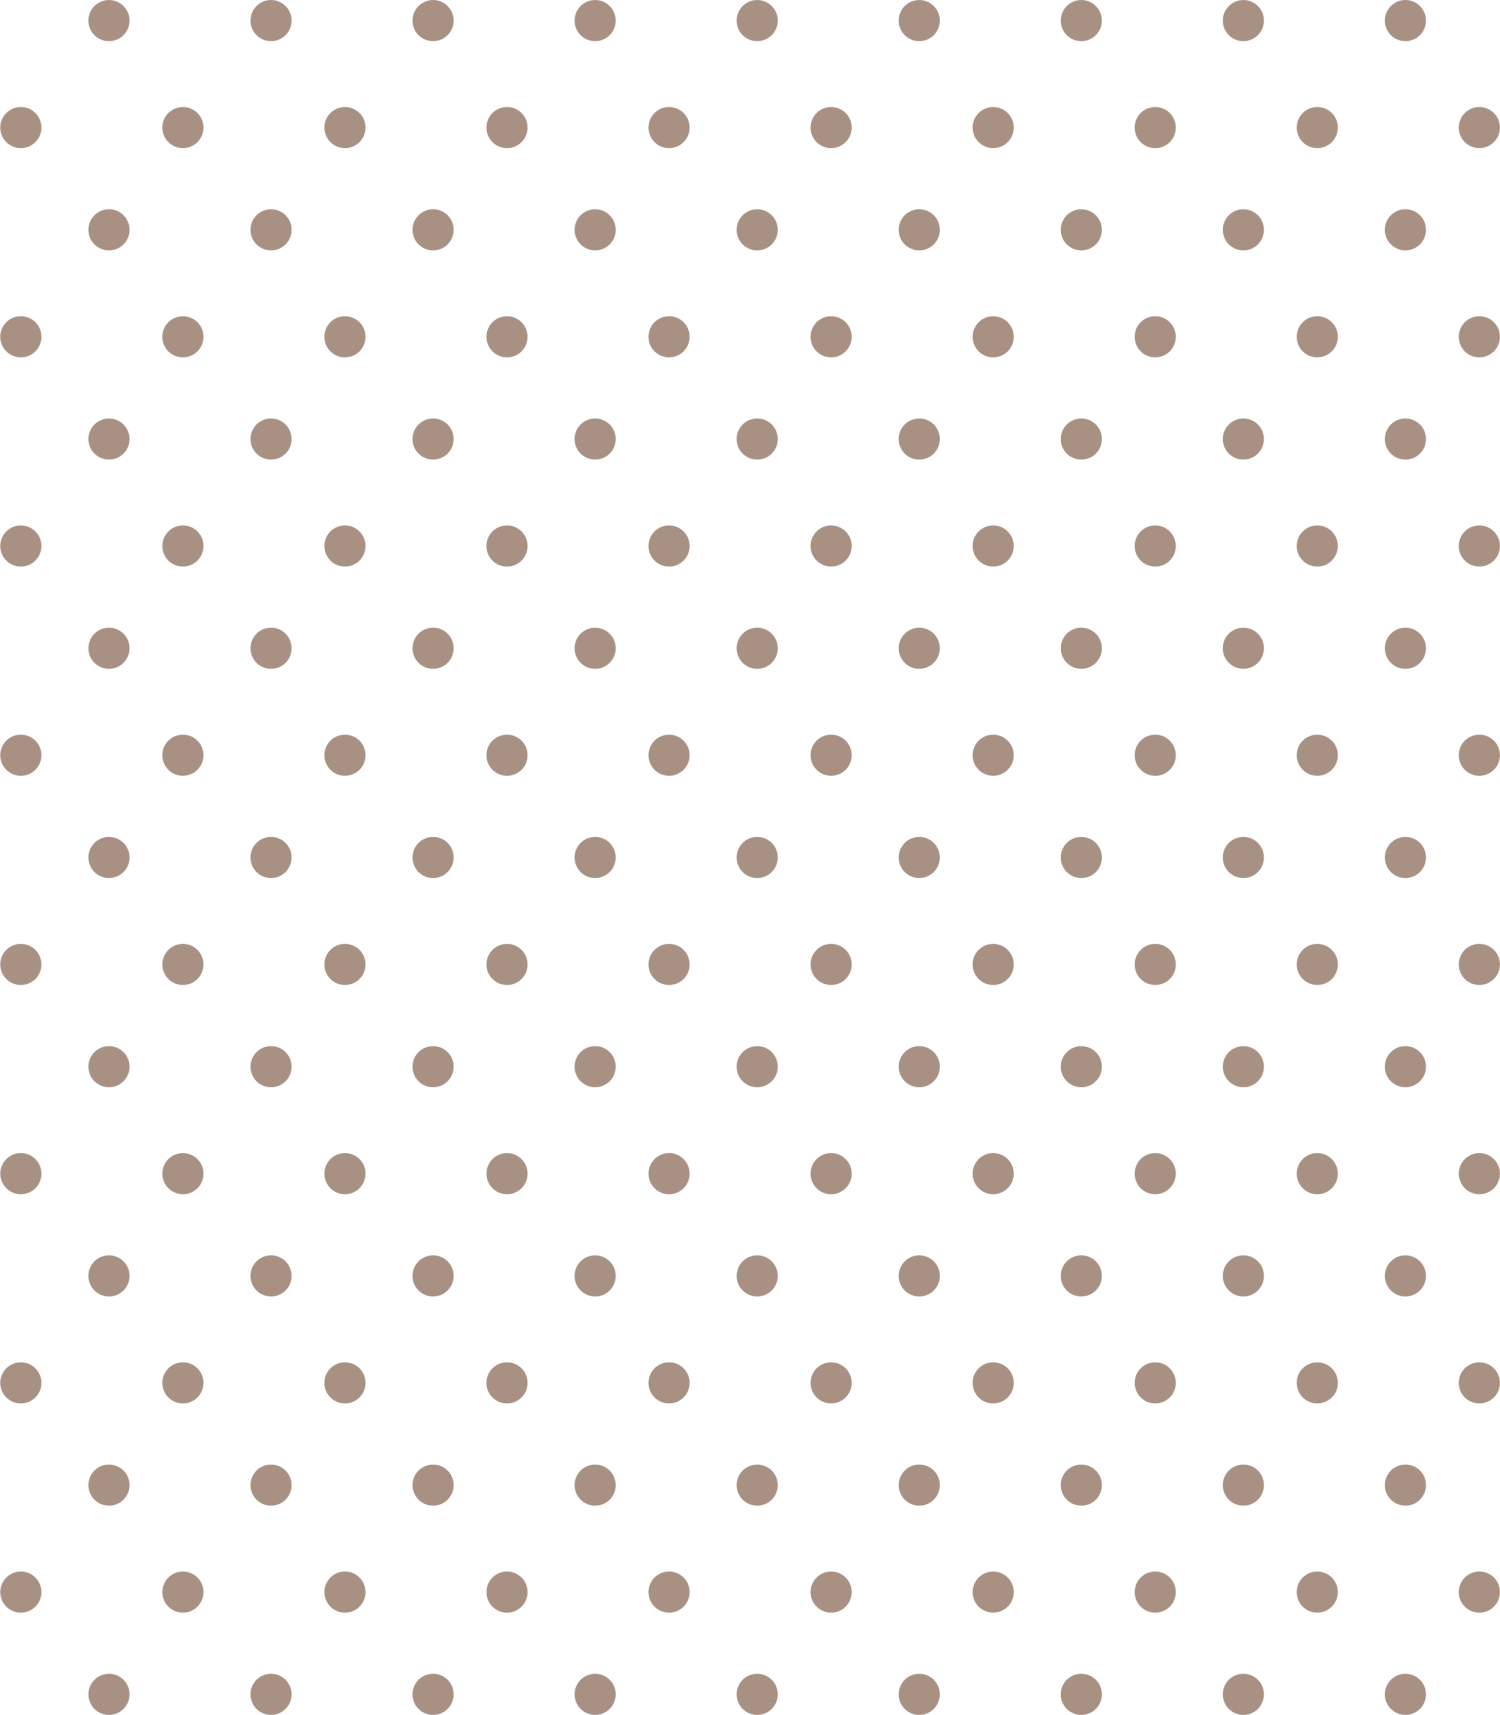 dot transparent background